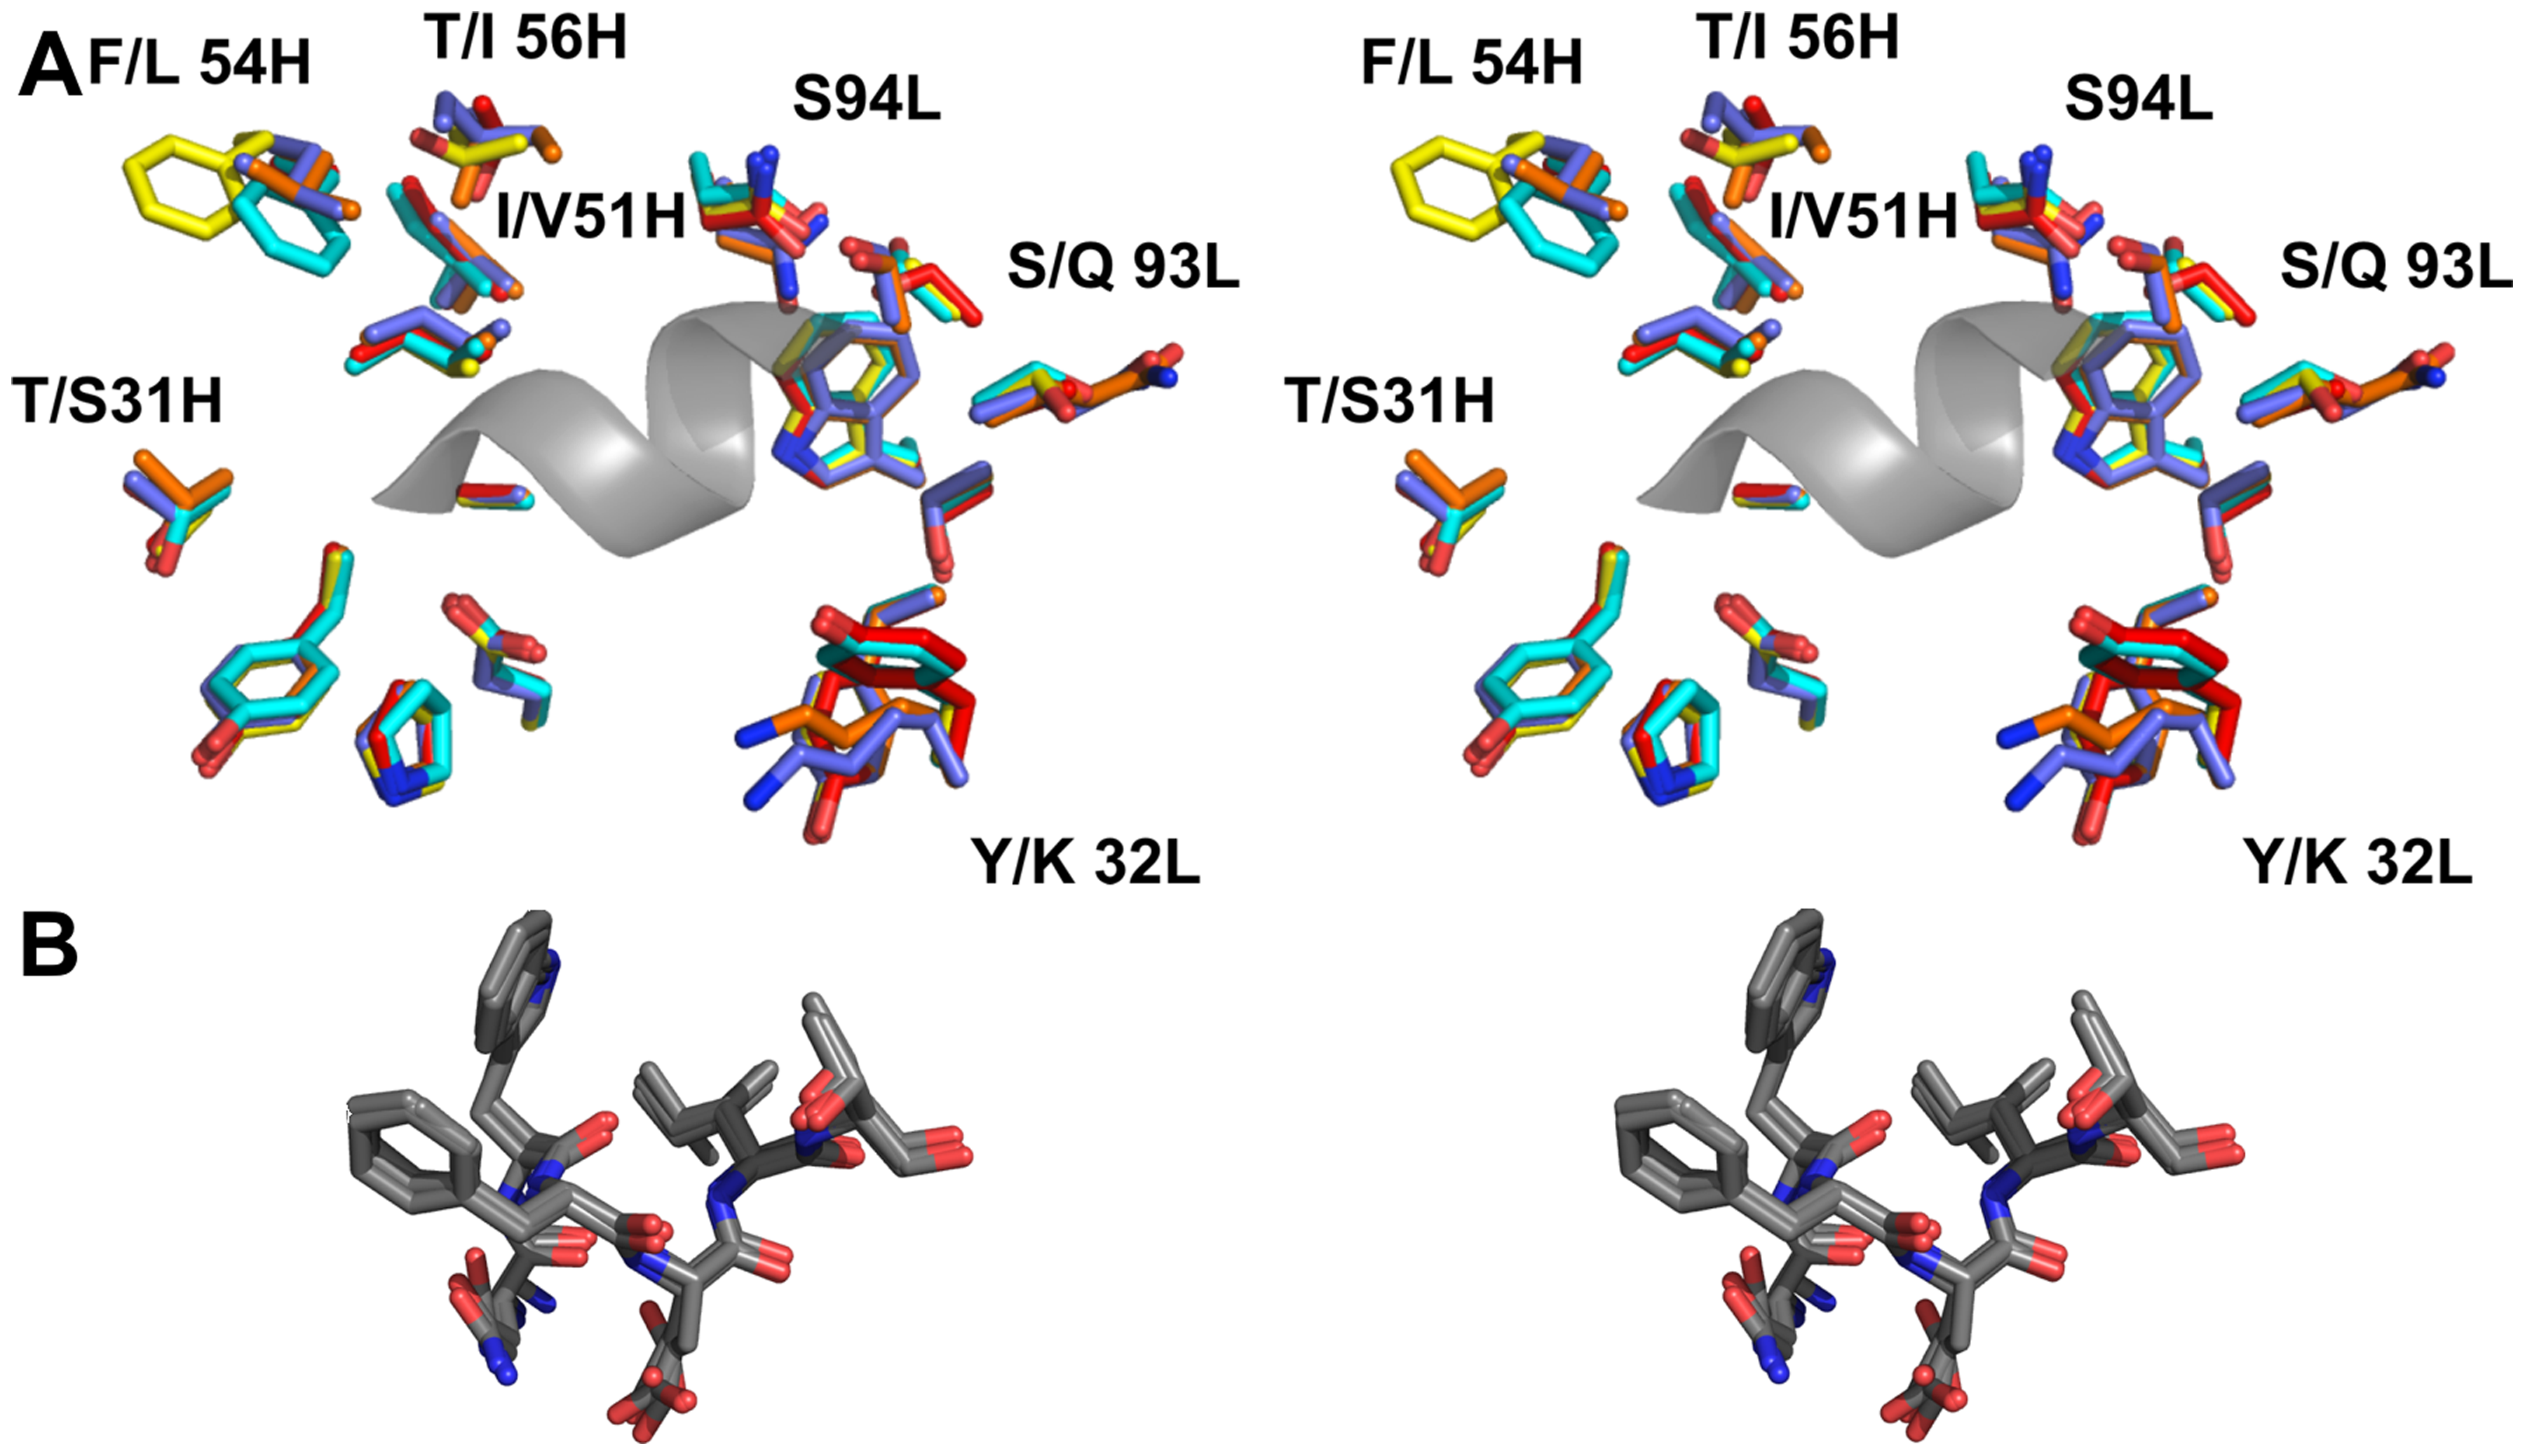 The epitope binding site is conserved between 4E10 and its GEPs.